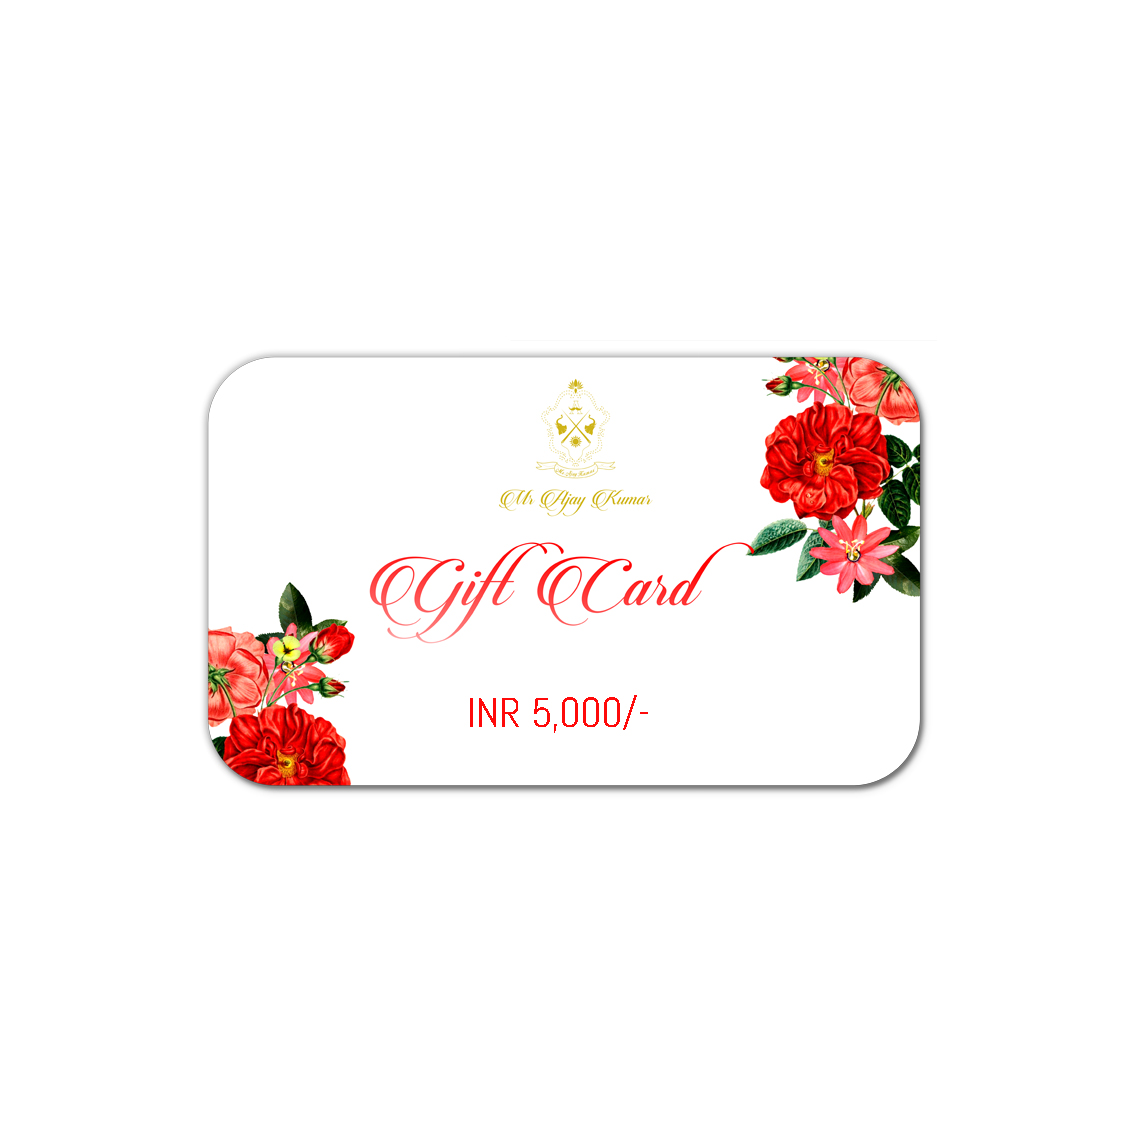 INR 5000 GIFT CARD